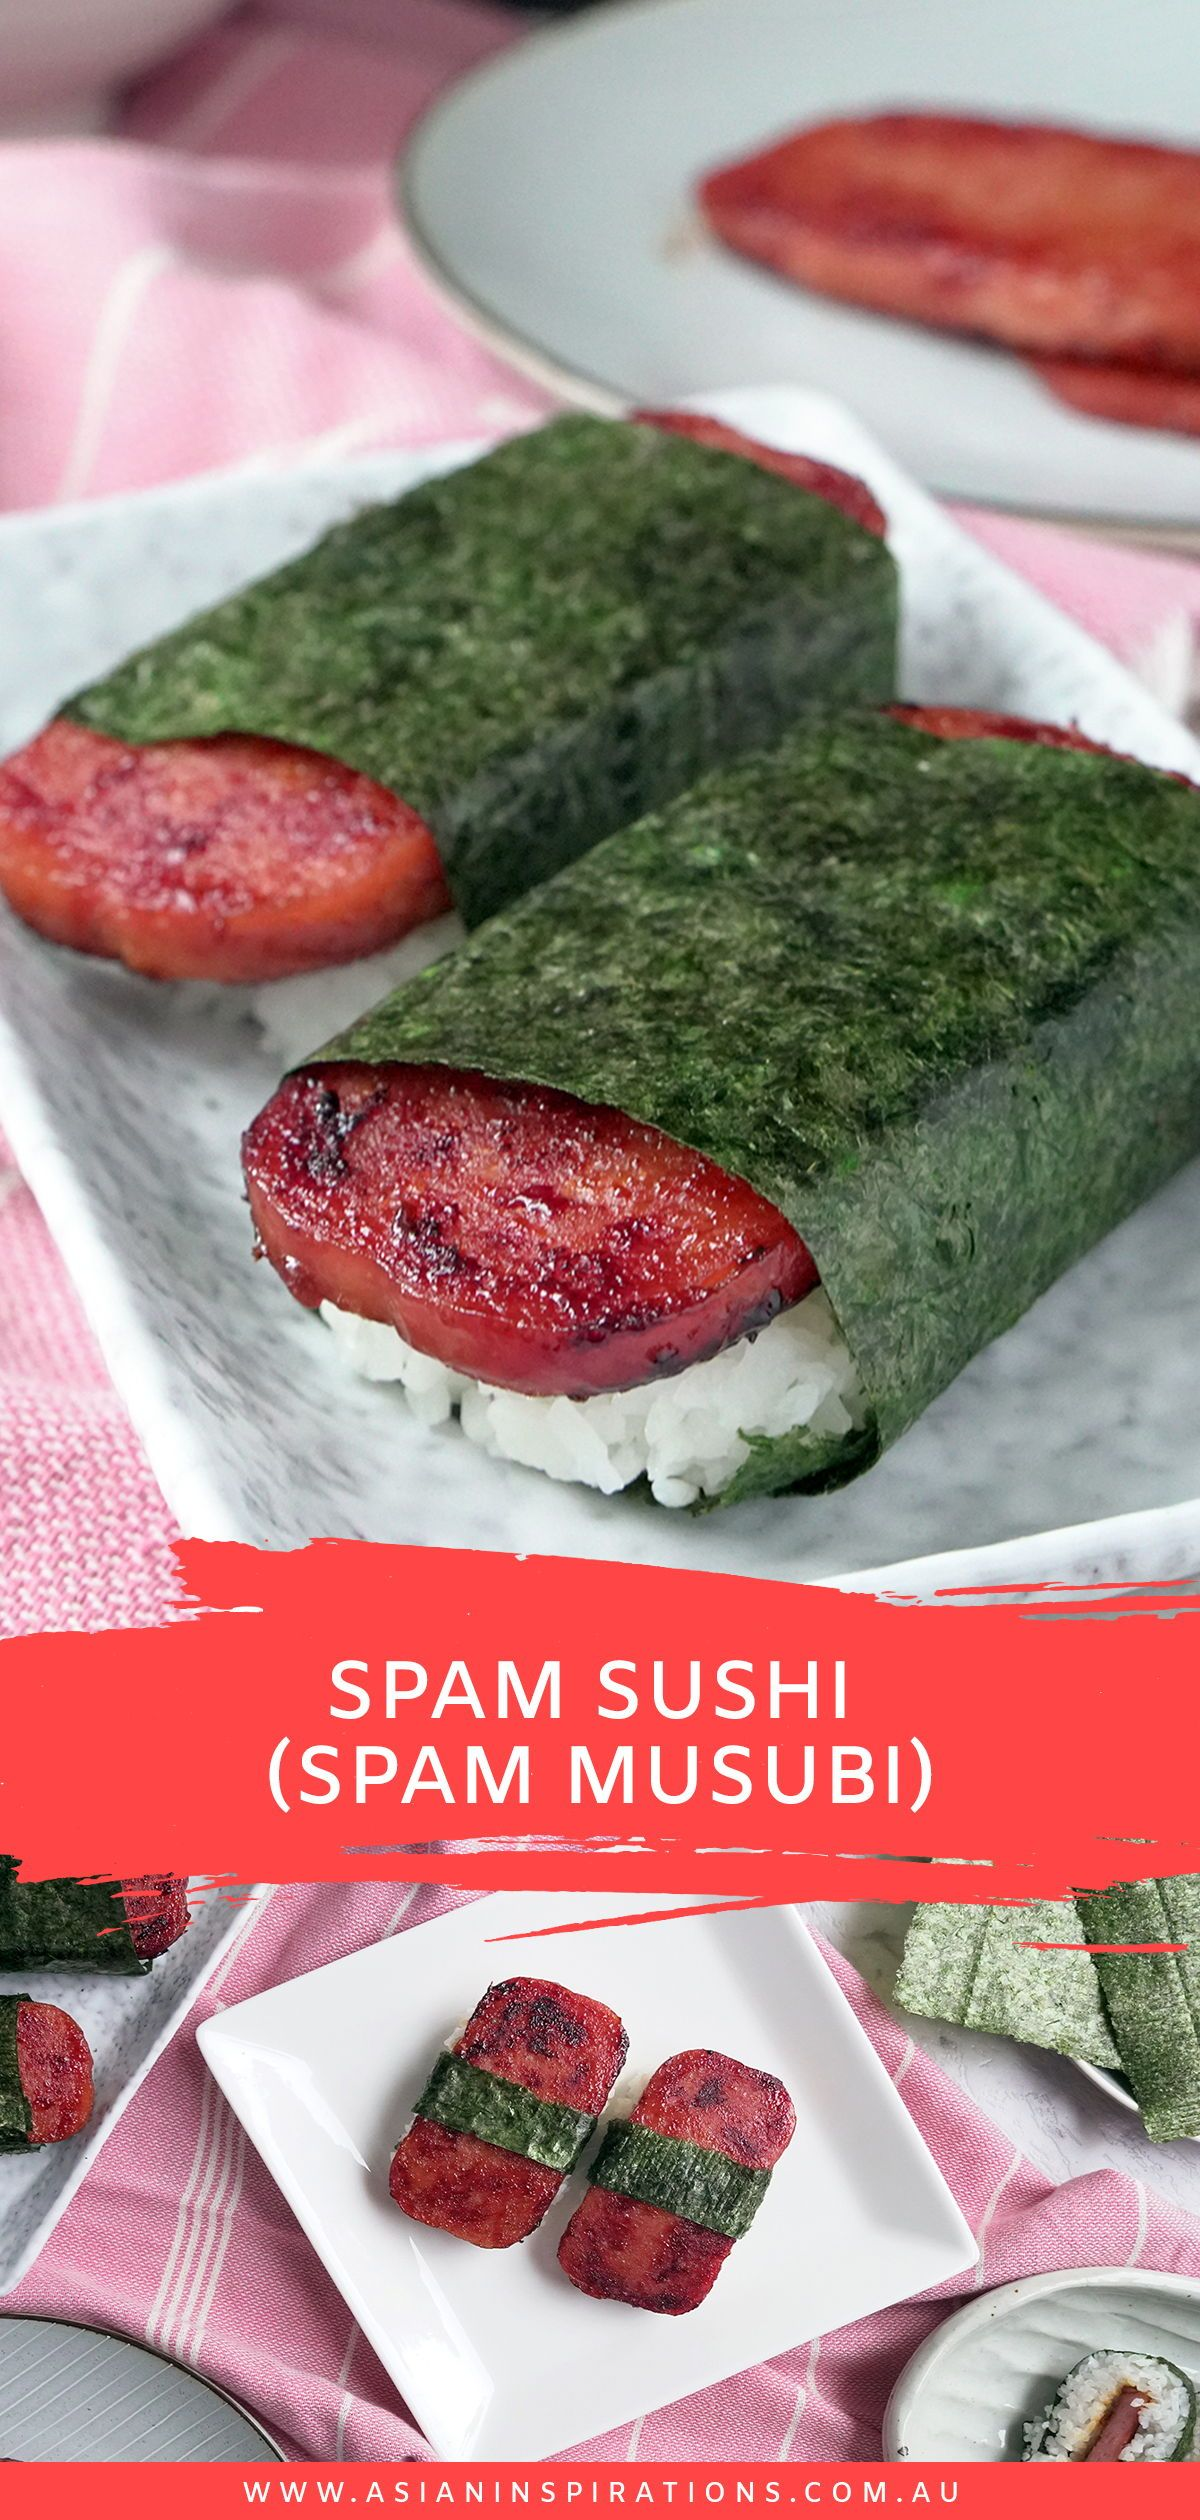 Spam Sushi Spam Musubi Asian Inspirations Recipe Spam Sushi Recipes Sushi